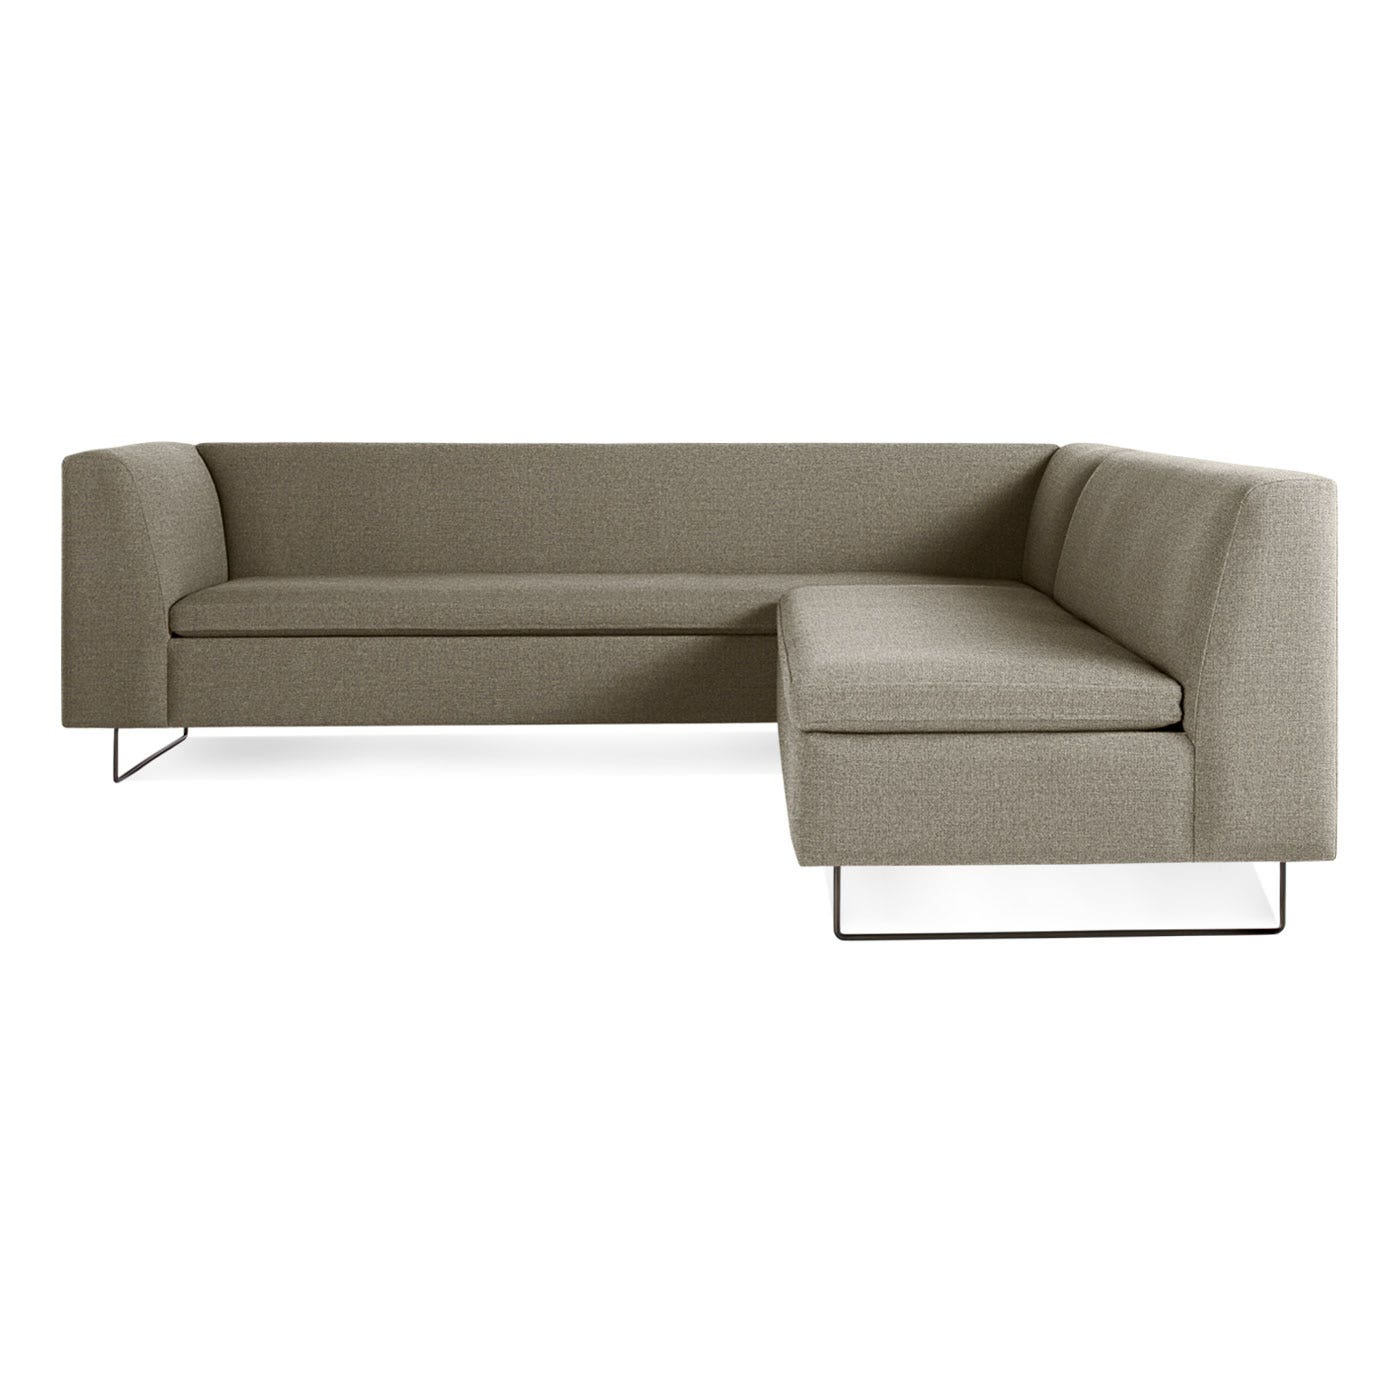 Fabulous Cleon Small Sectional Sofa Modern Sofas And Sectionals Ncnpc Chair Design For Home Ncnpcorg